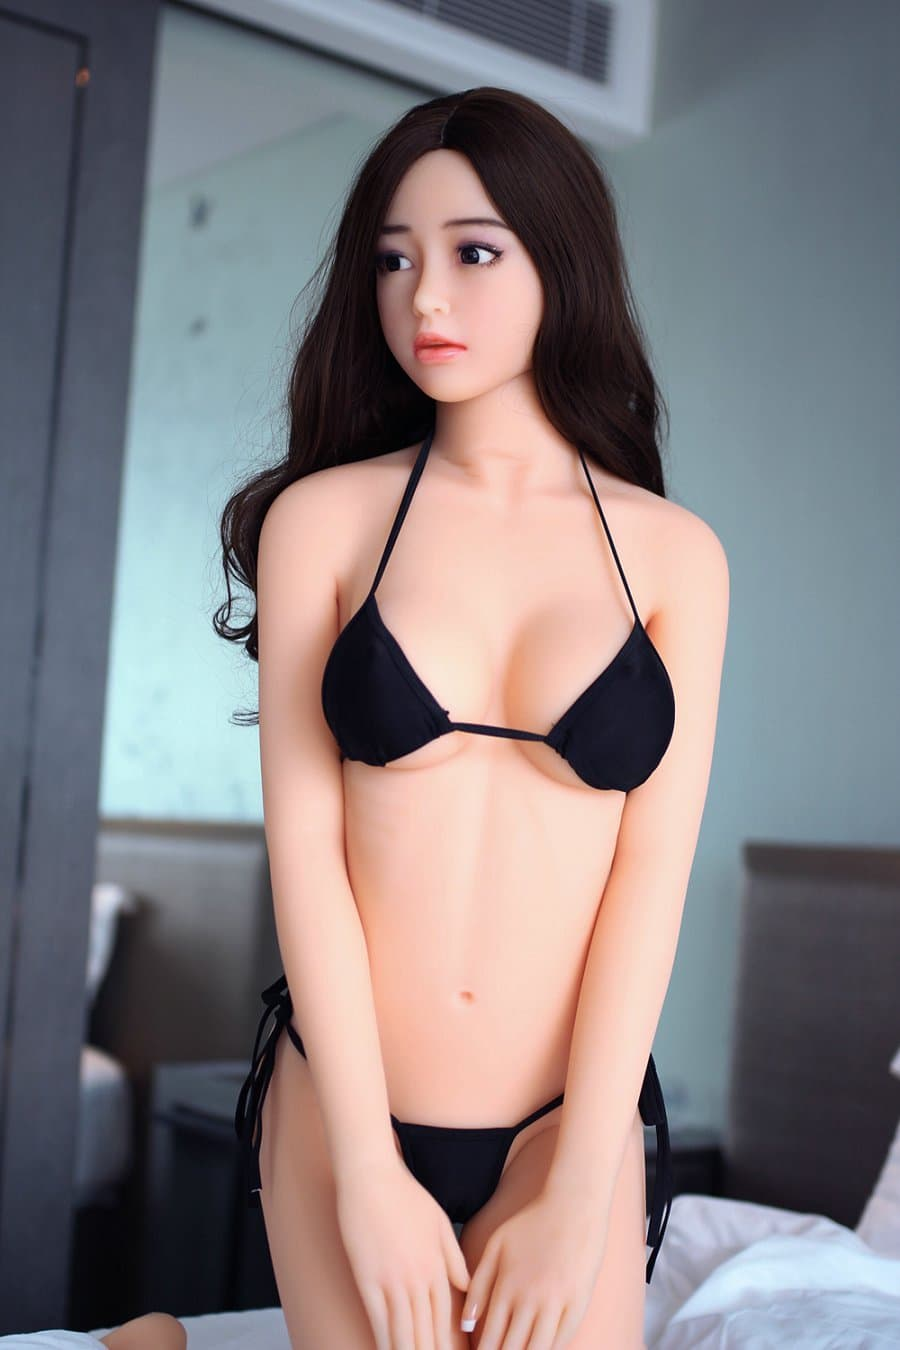 tuesday 168cm af black hair japanese big boobs skinny tpe asian sex doll(2)